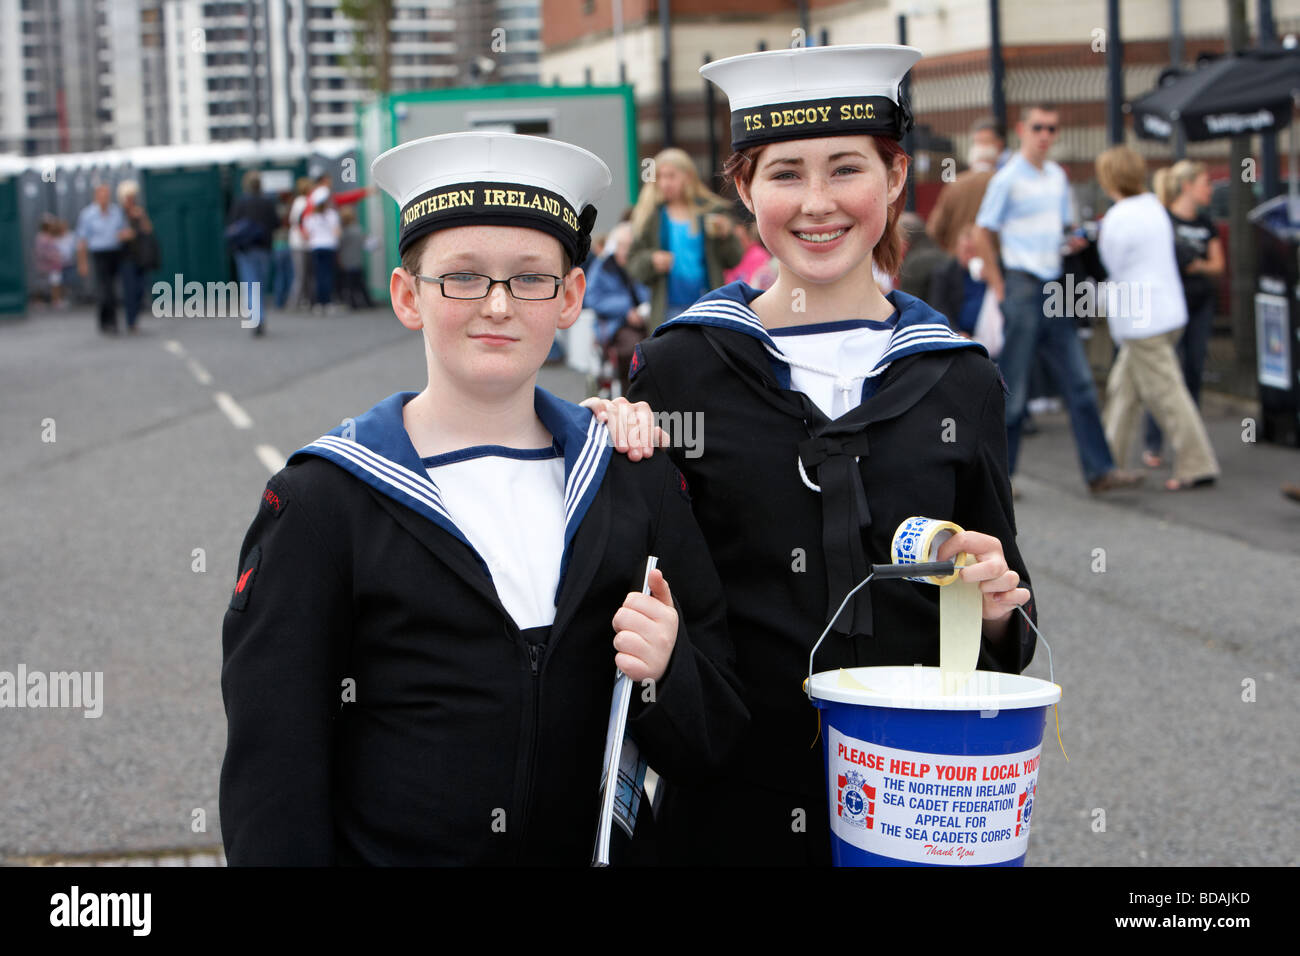 two sea cadets boy and girl raising money for charity at an outdoor event in belfast city northern ireland uk Stock Photo